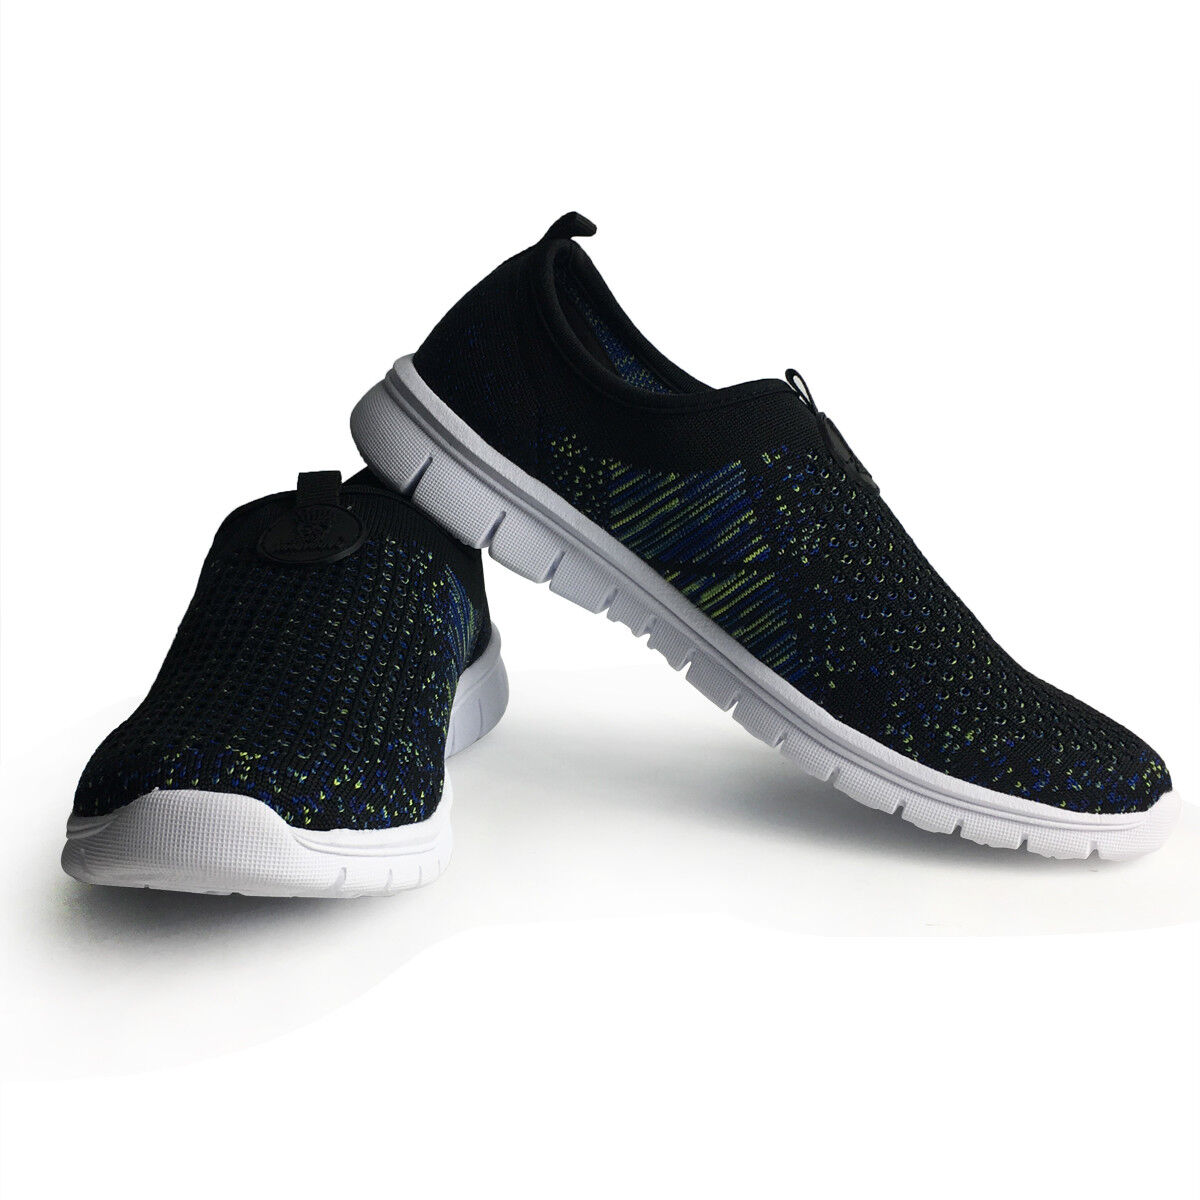 Womens Casual Shoes Athletic Walking Lightweight Slip On Sneakers Summer Loafers